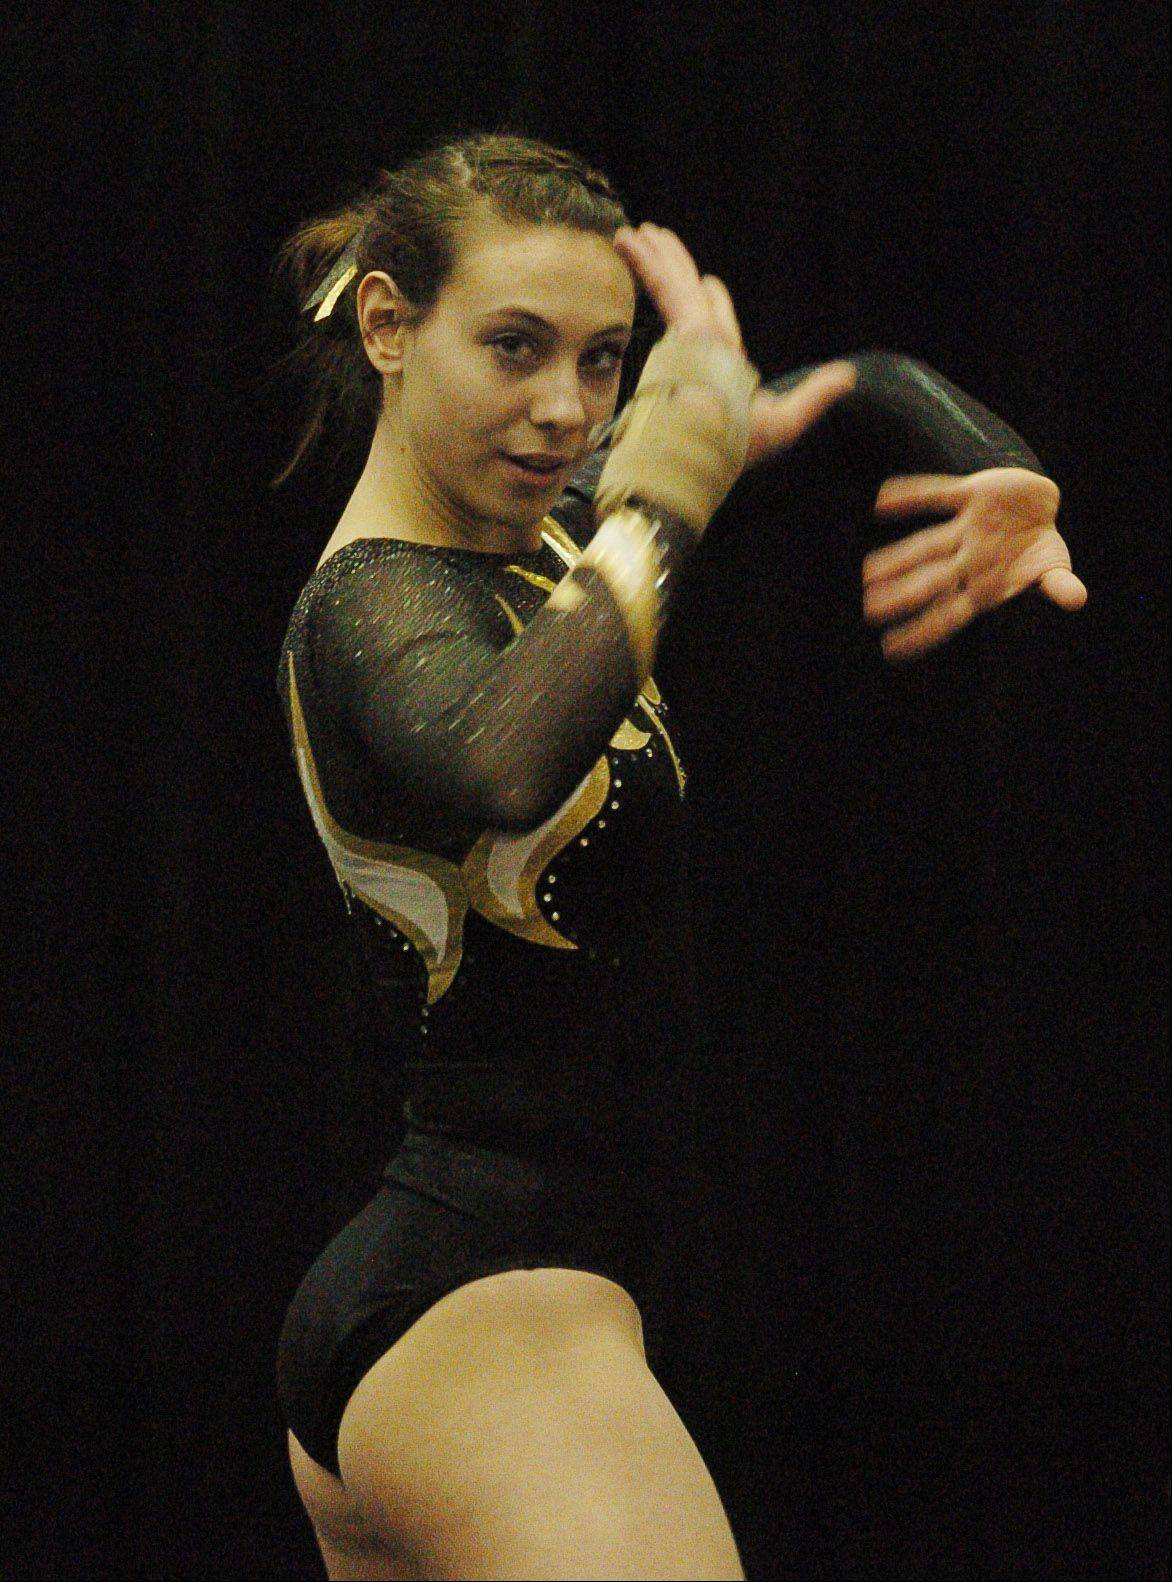 Glenbard North's Mariah Matesi performs her 4th place floor exercise during the girls state gymnastics finals.